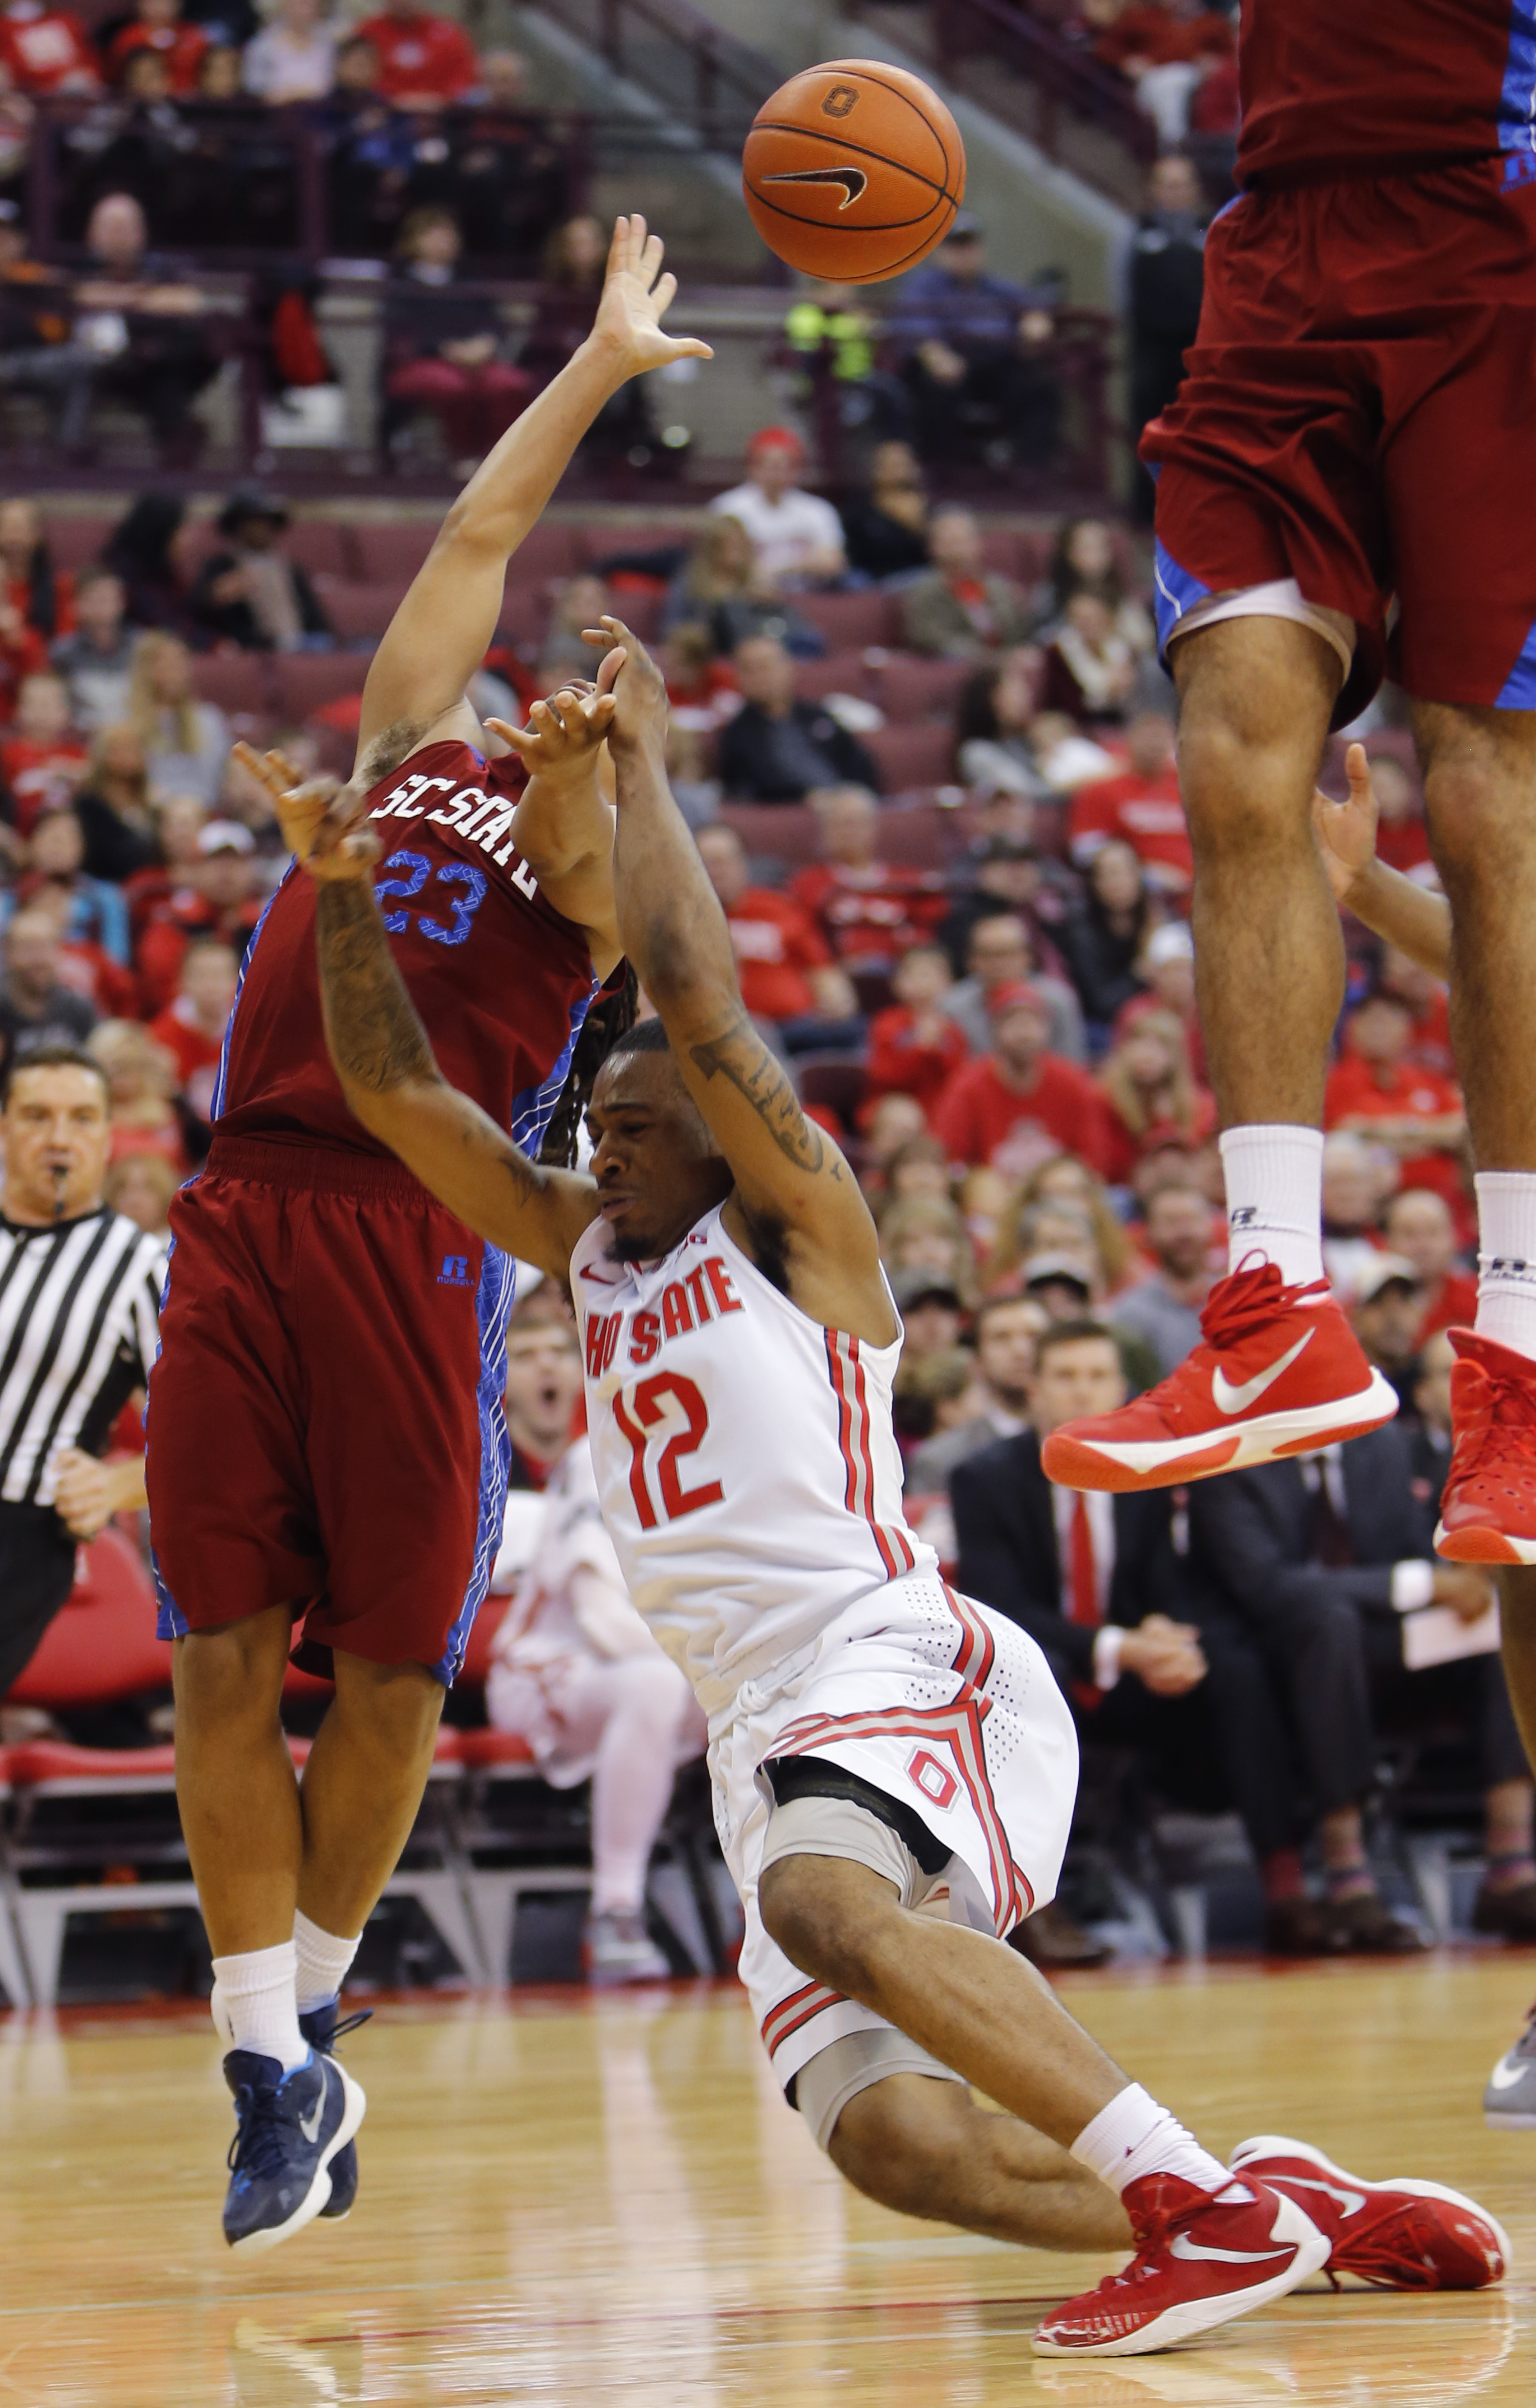 South Carolina State's Ty Soloman, left, fouls Ohio State's A.J. Harris as he tries to shoot during the second half of an NCAA college basketball game Sunday, Dec. 27, 2015, in Columbus, Ohio. Ohio State beat South Carolina State 73-57. (AP Photo/Jay LaPr